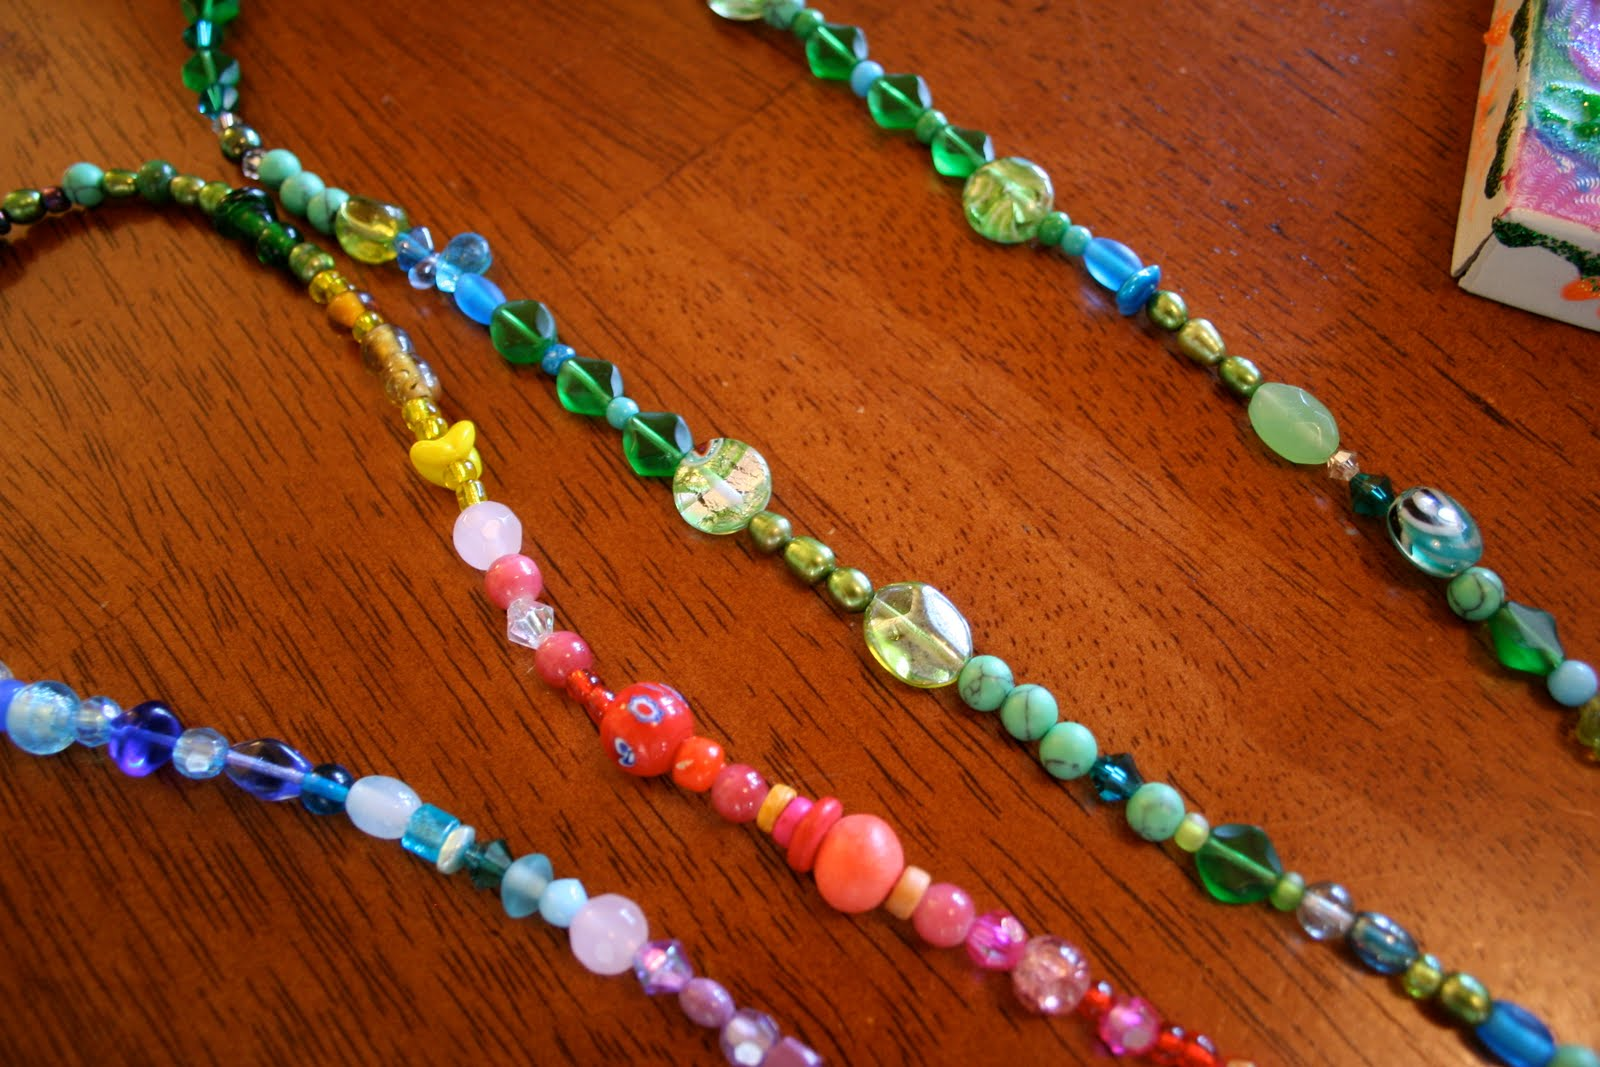 Home Made Gifts: Eye Glasses Chain